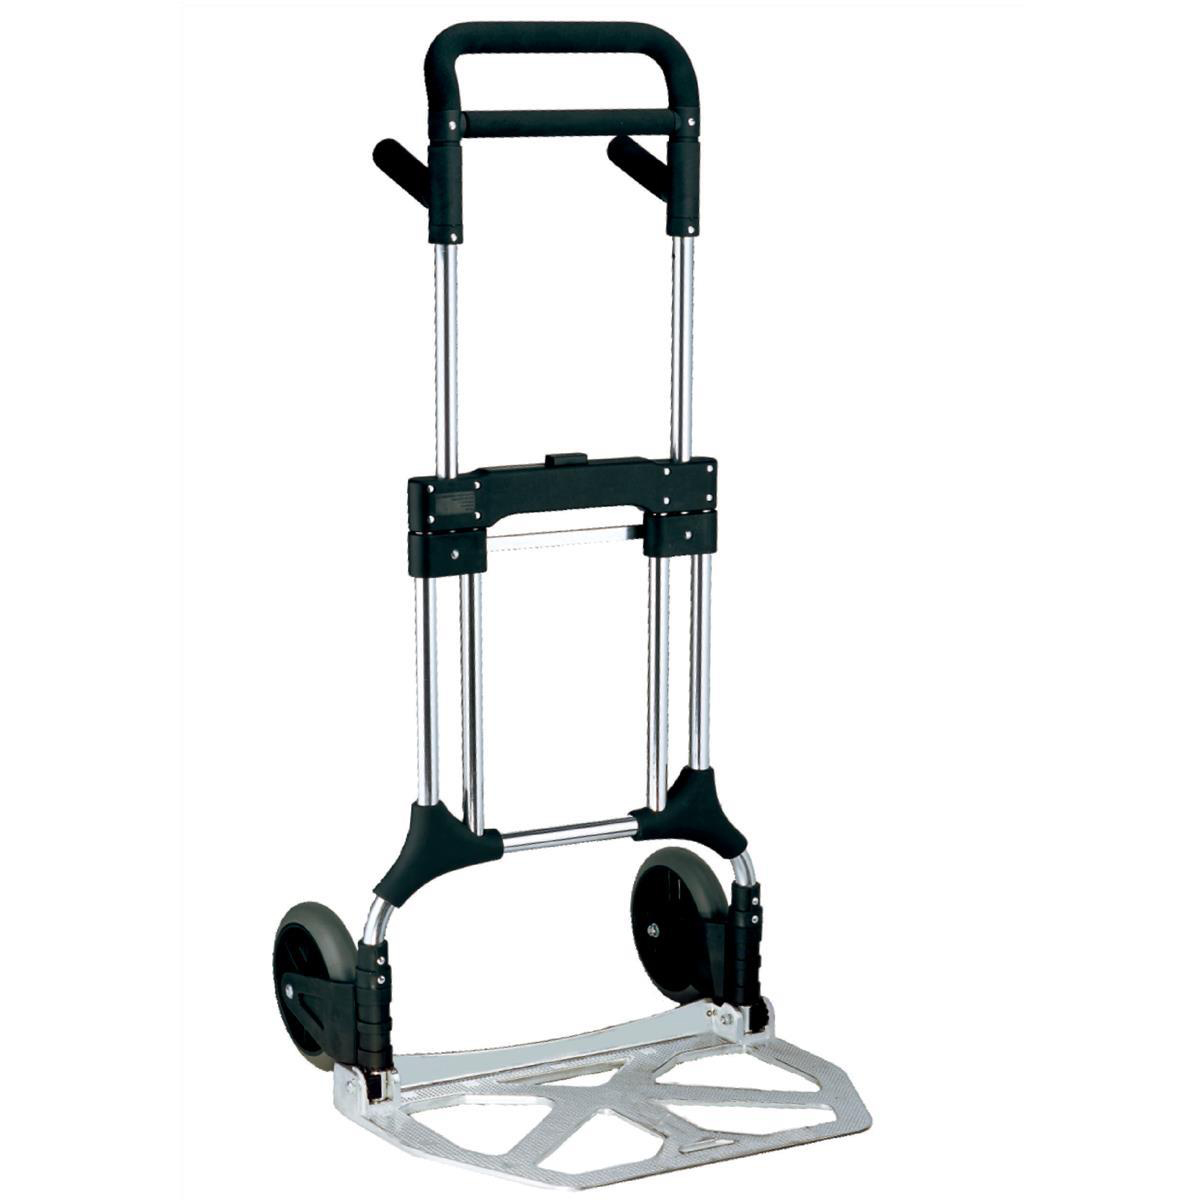 Lightweight Folding Sack Truck Telescopic Handle Capacity 200kg Foot Size W590xL390mm Ref LWFT/200